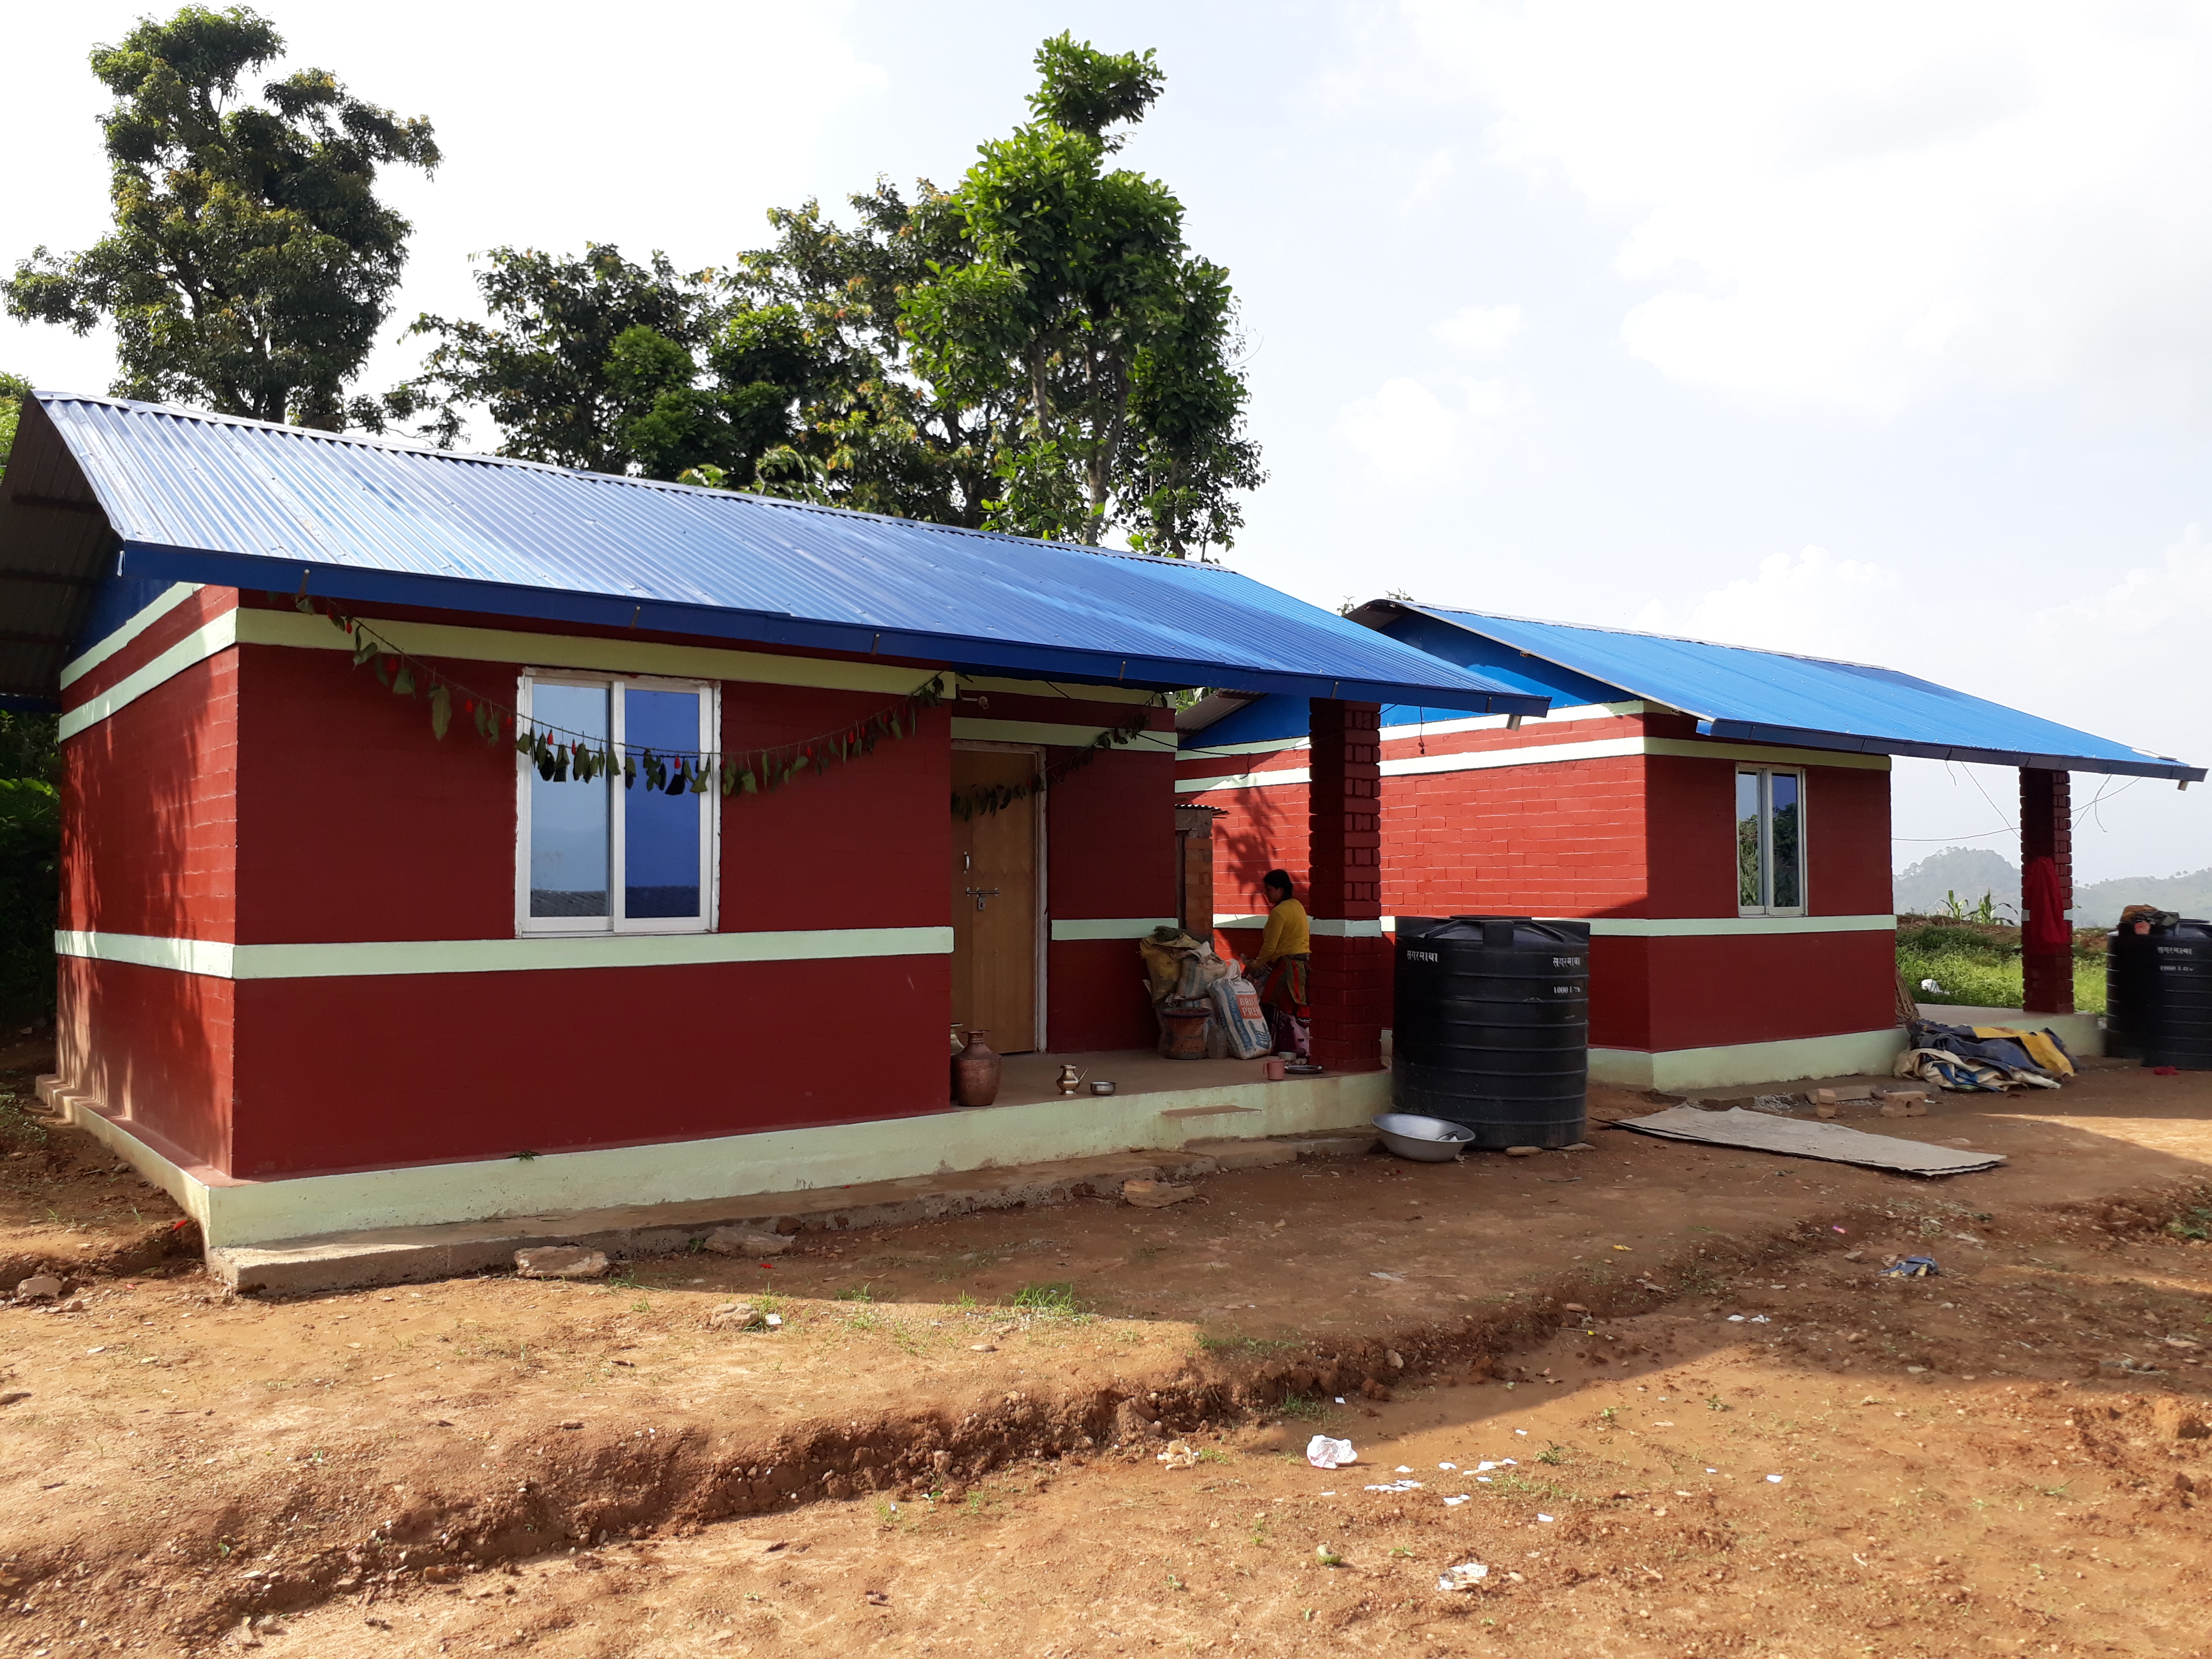 House for earthquake survivor in Nepal